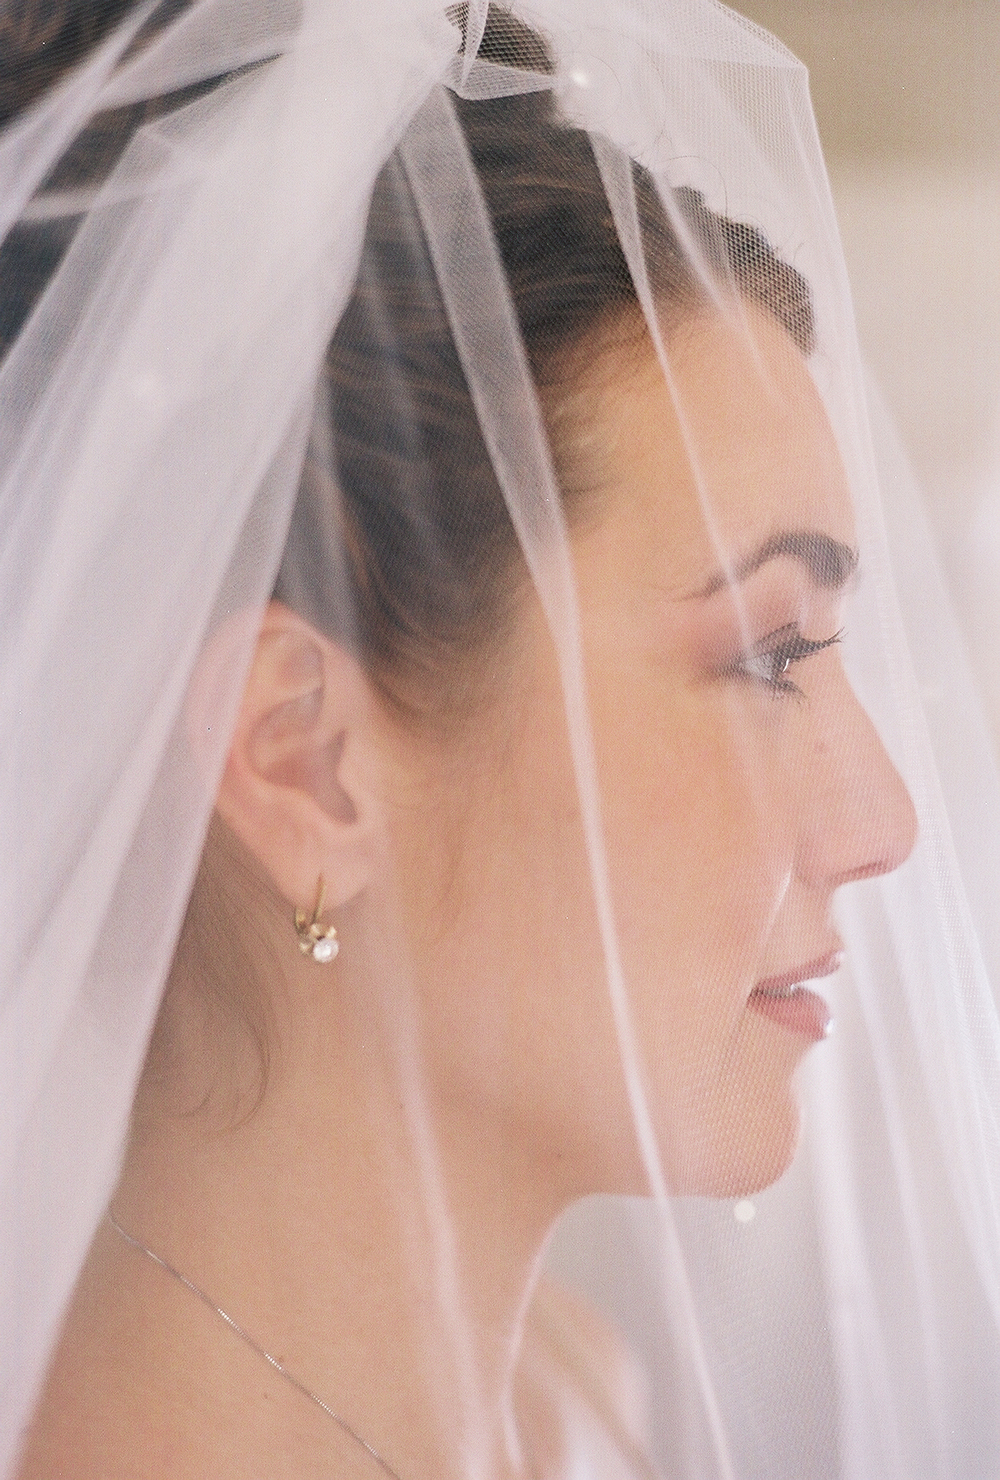 bride_close_portait.JPG